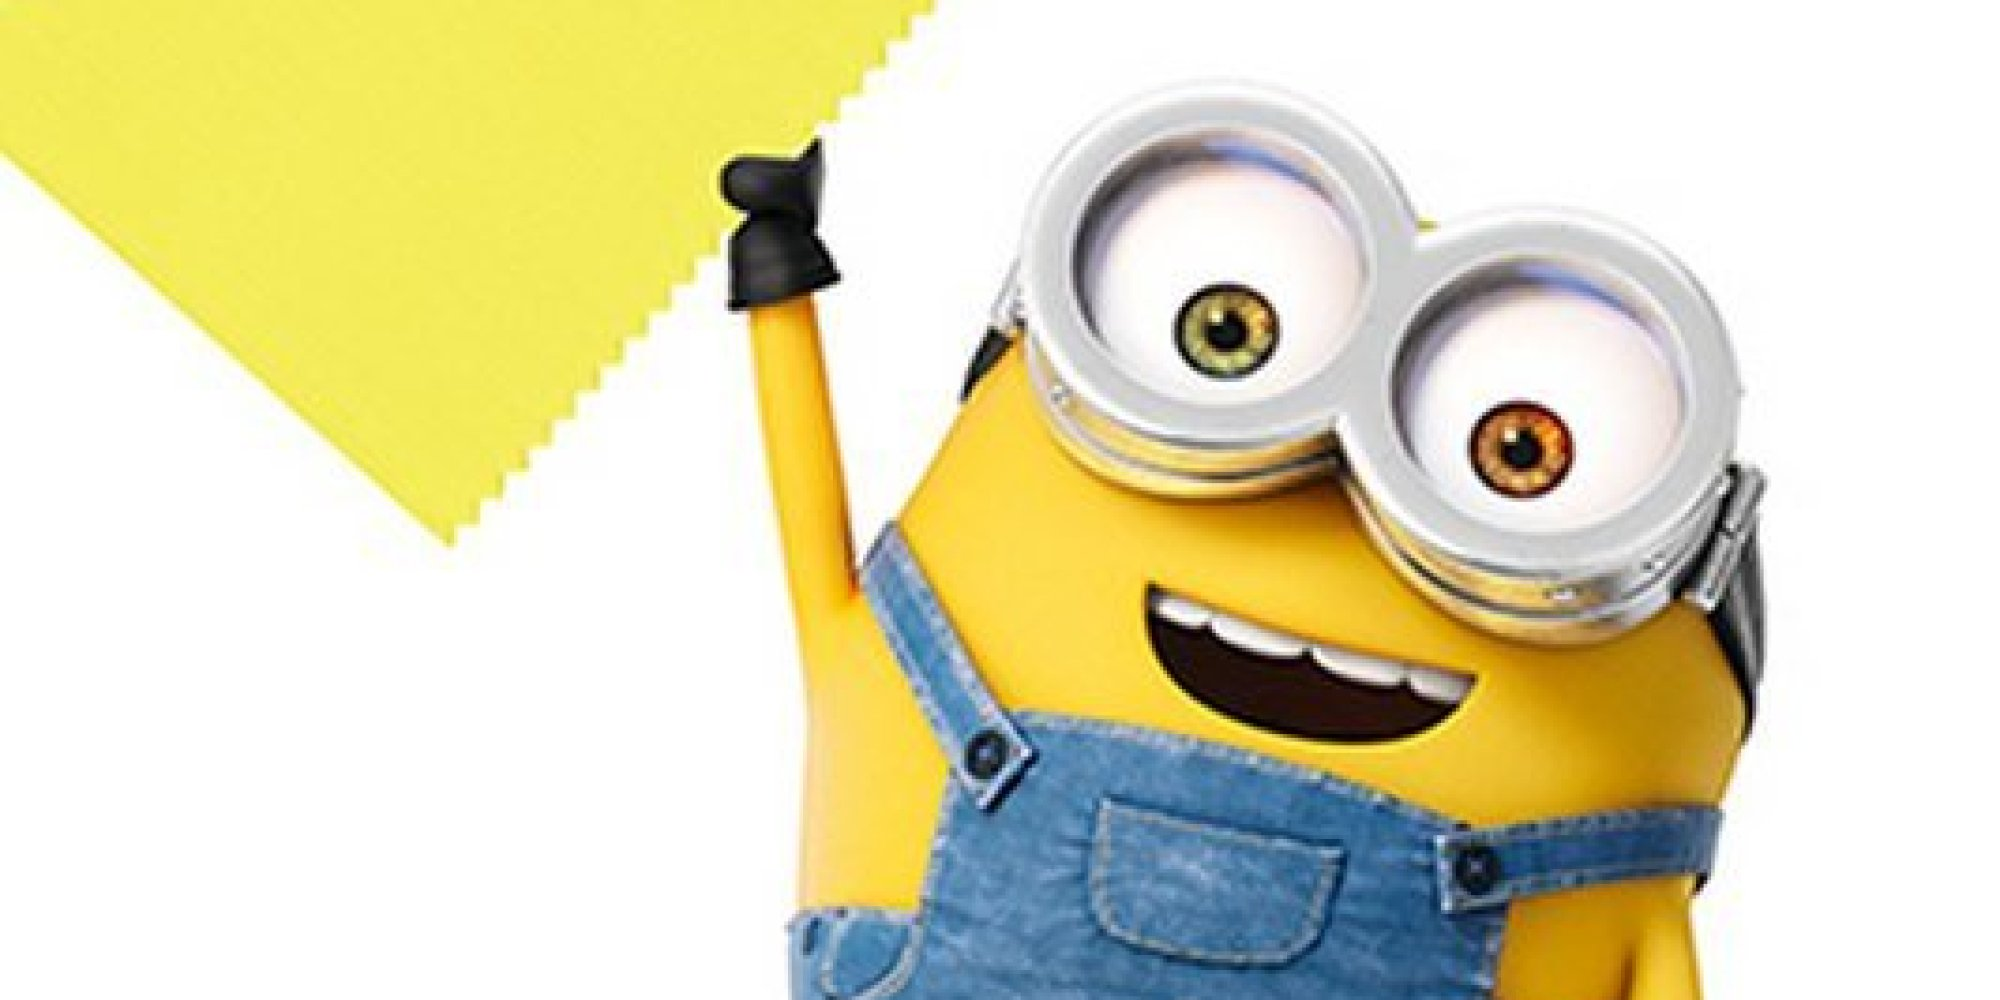 Pantone Introduces Minion Yellow Its First New Color In 3 Years